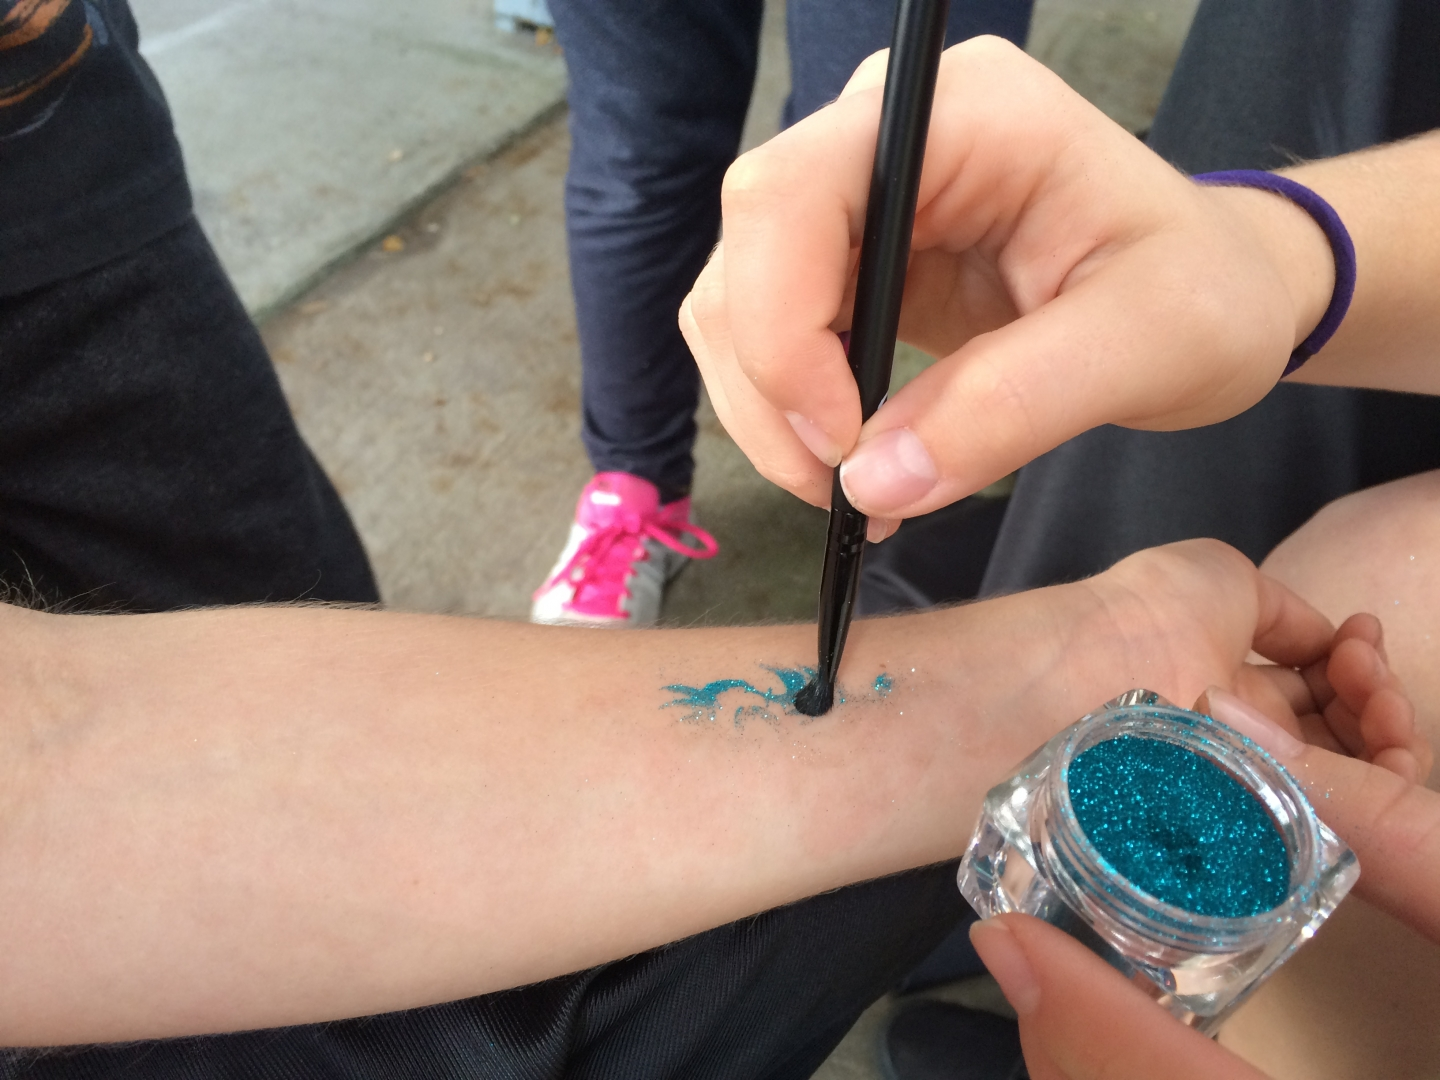 Blue Glitter Tattoo being carefully applied